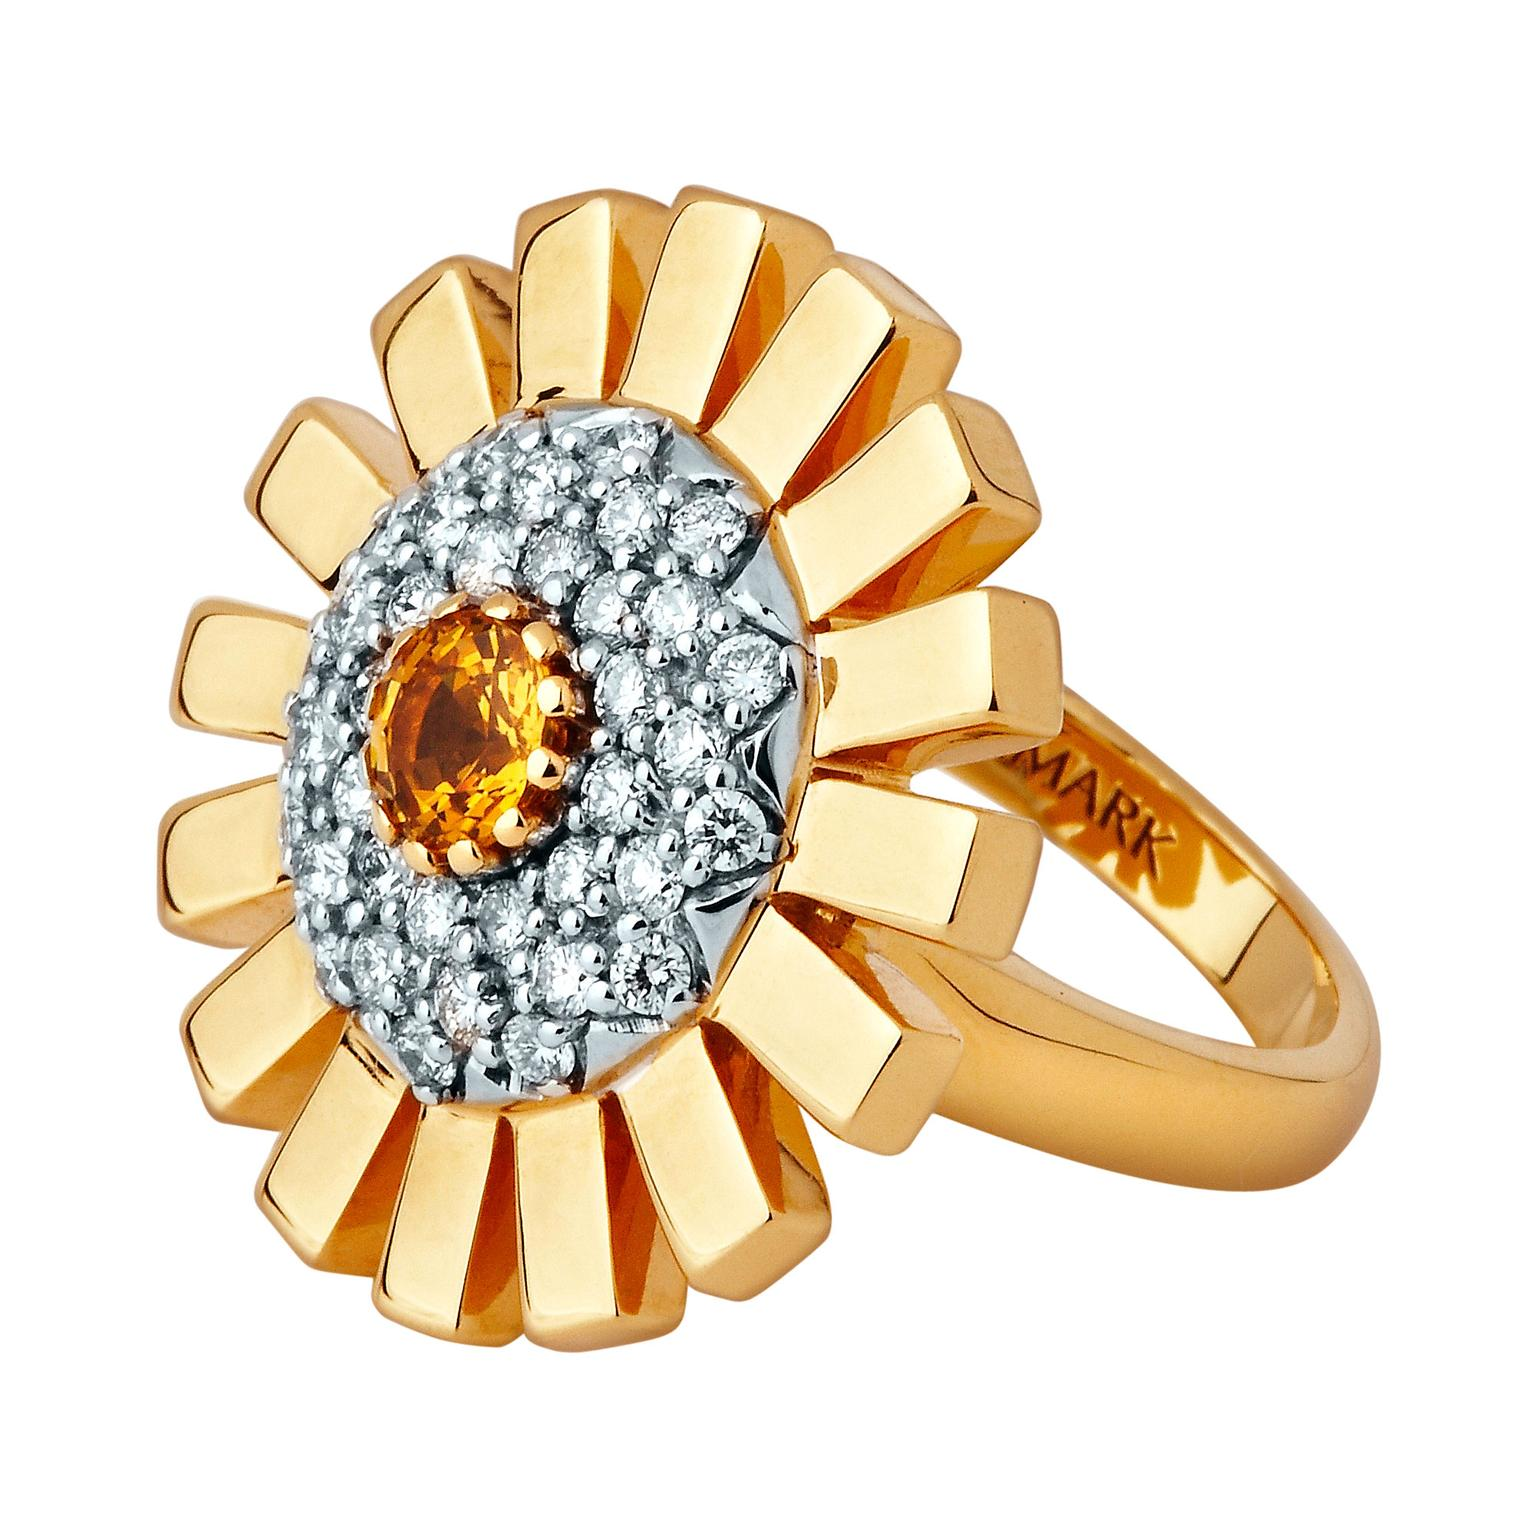 Stenmark yellow sapphire and white diamond ring